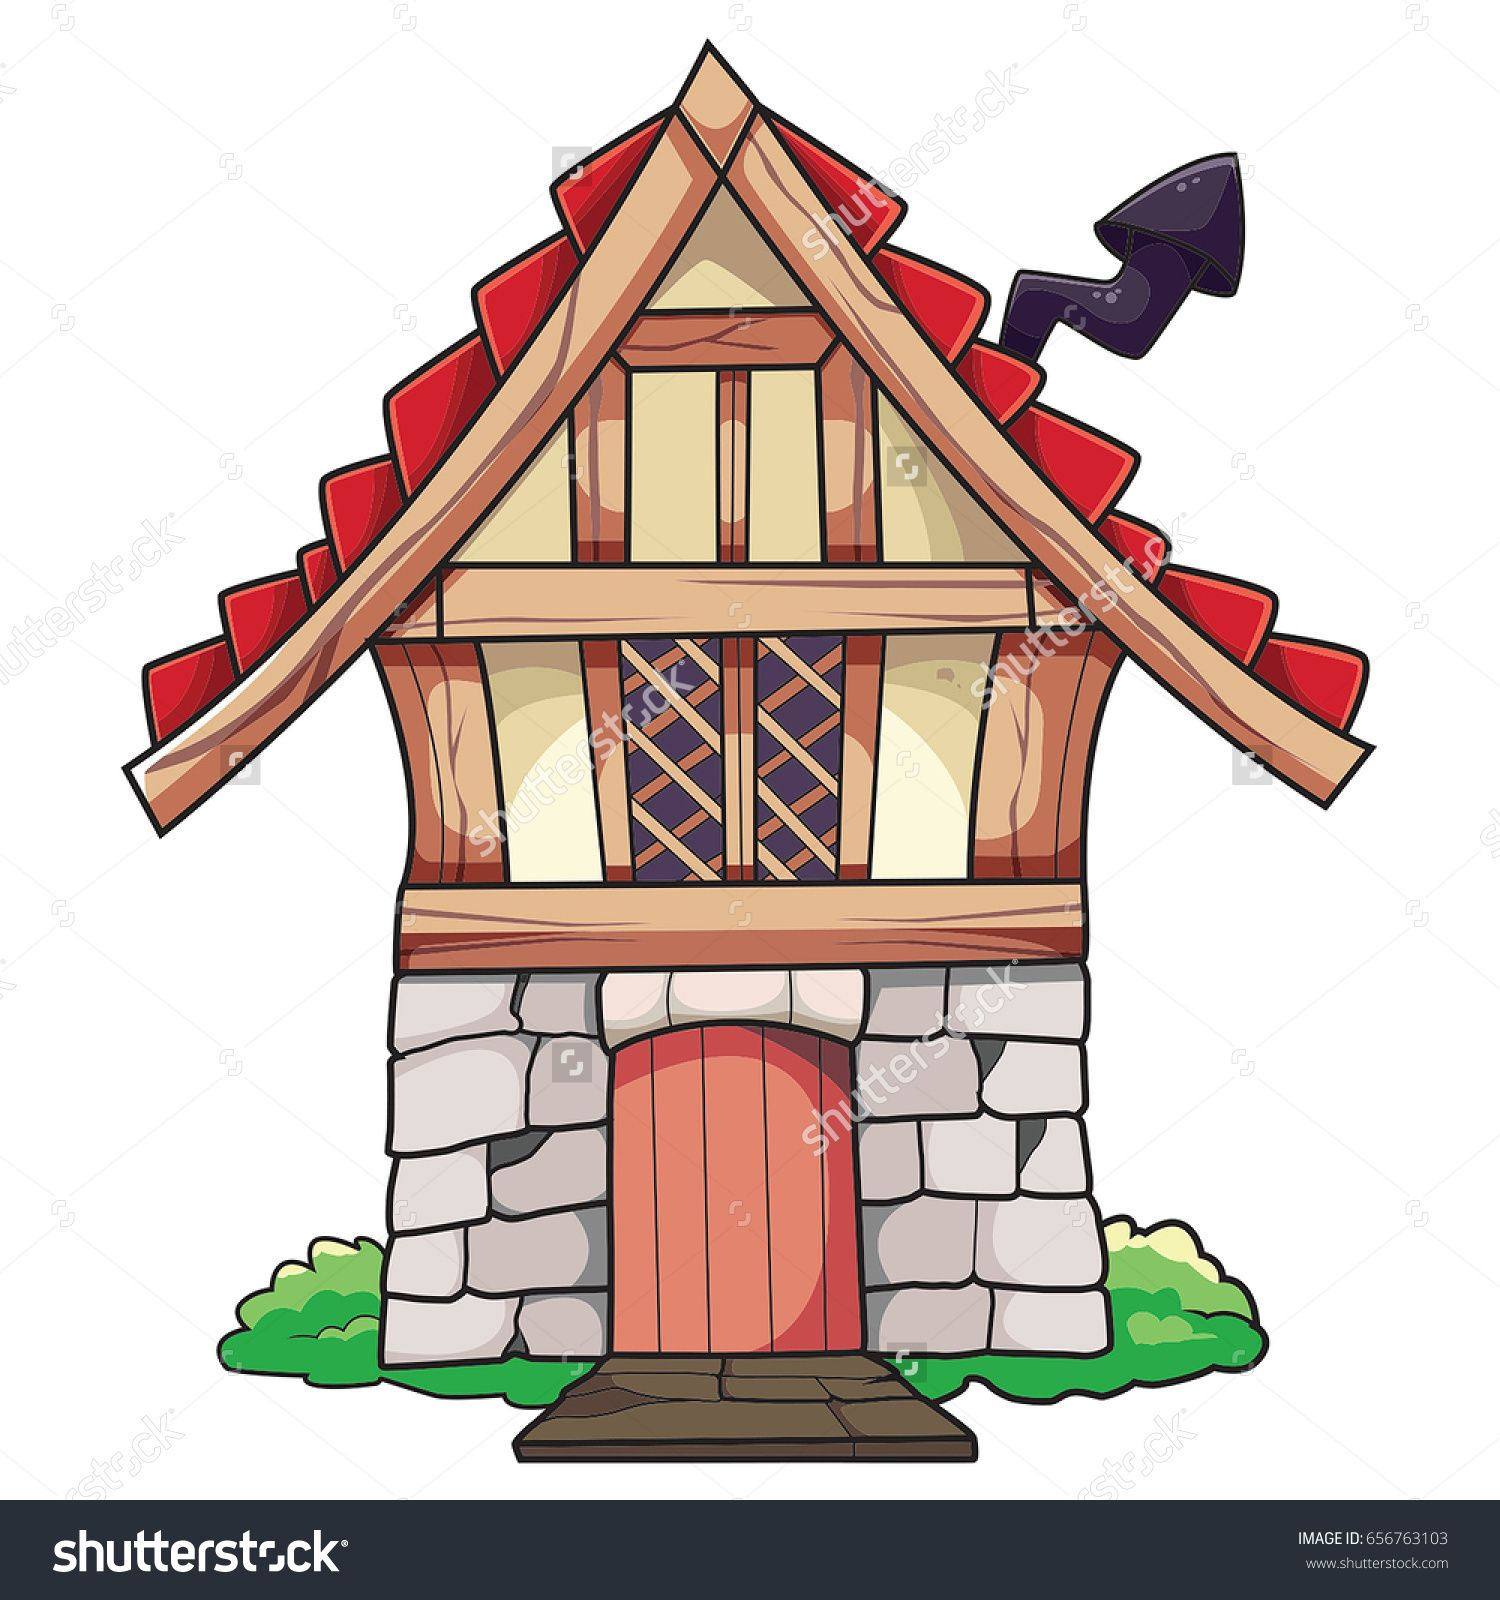 Old Cartoon Small House With Chimney Vector Illustration For Sale Cartoon House Old Cartoons Small House